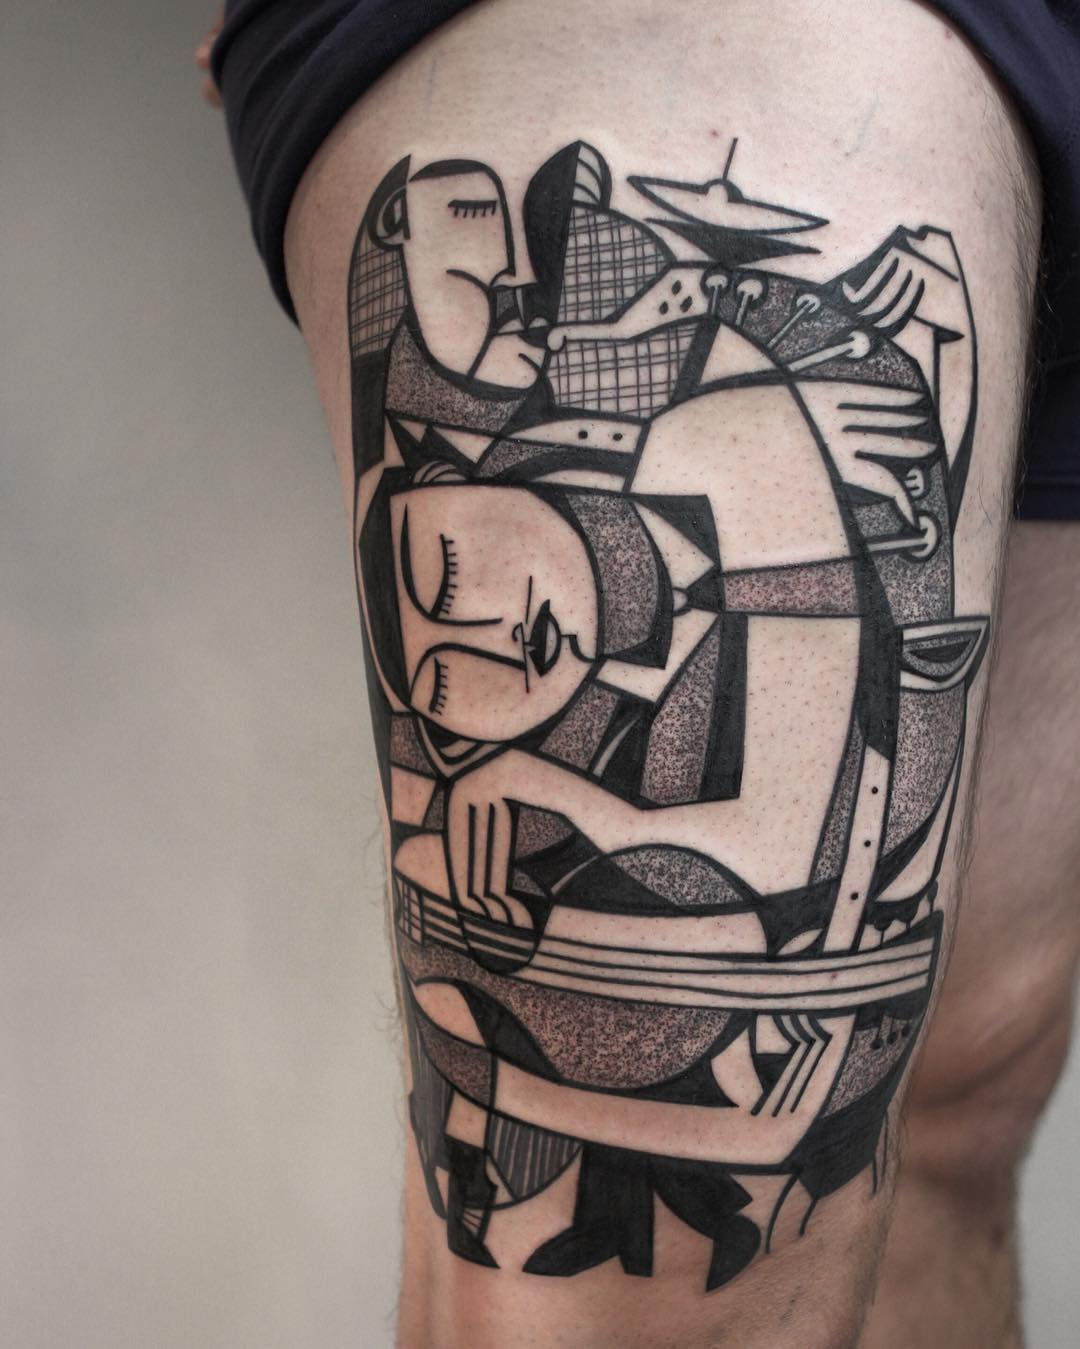 Vibrant Tattoos By Peter Aurisch Incorporate Elements Of Ideas And Designs